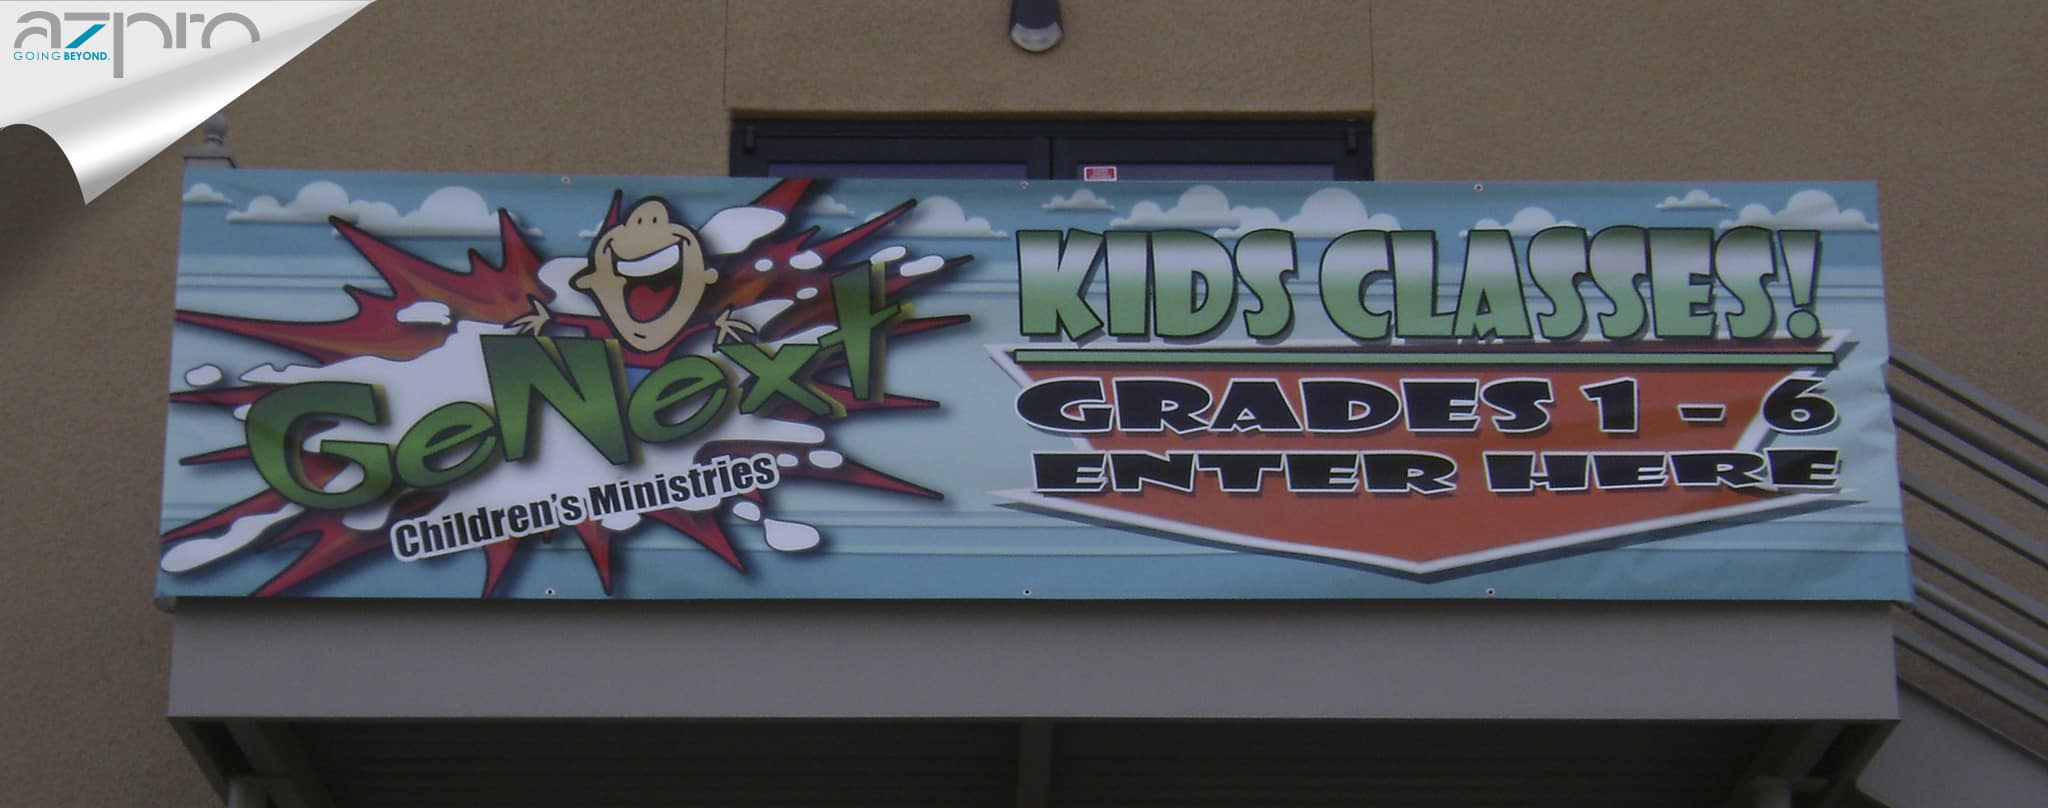 Get The Word Out With Phoenix Custom Vinyl Banners